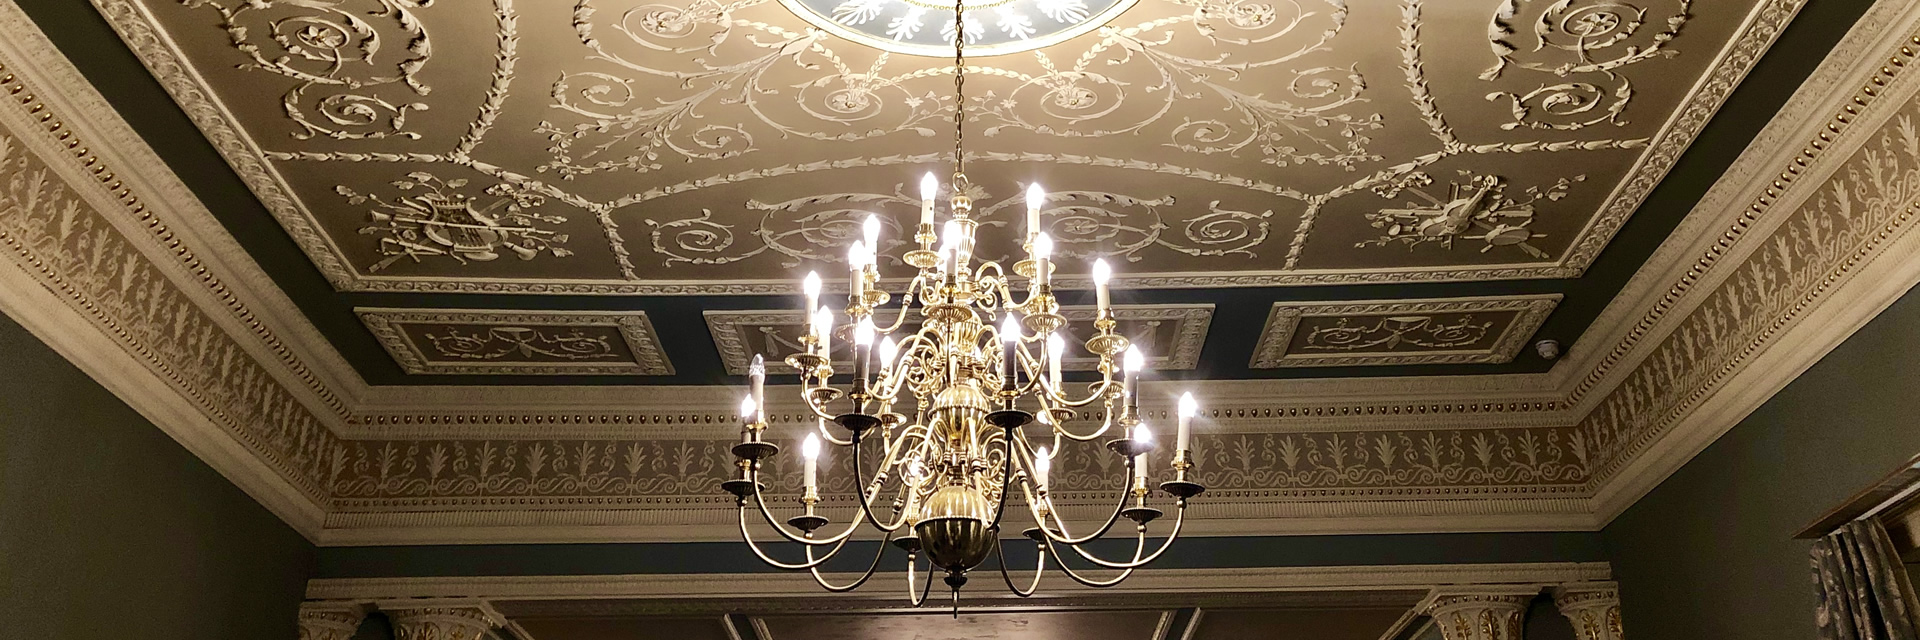 grantley hall chandelier historic building rennovation